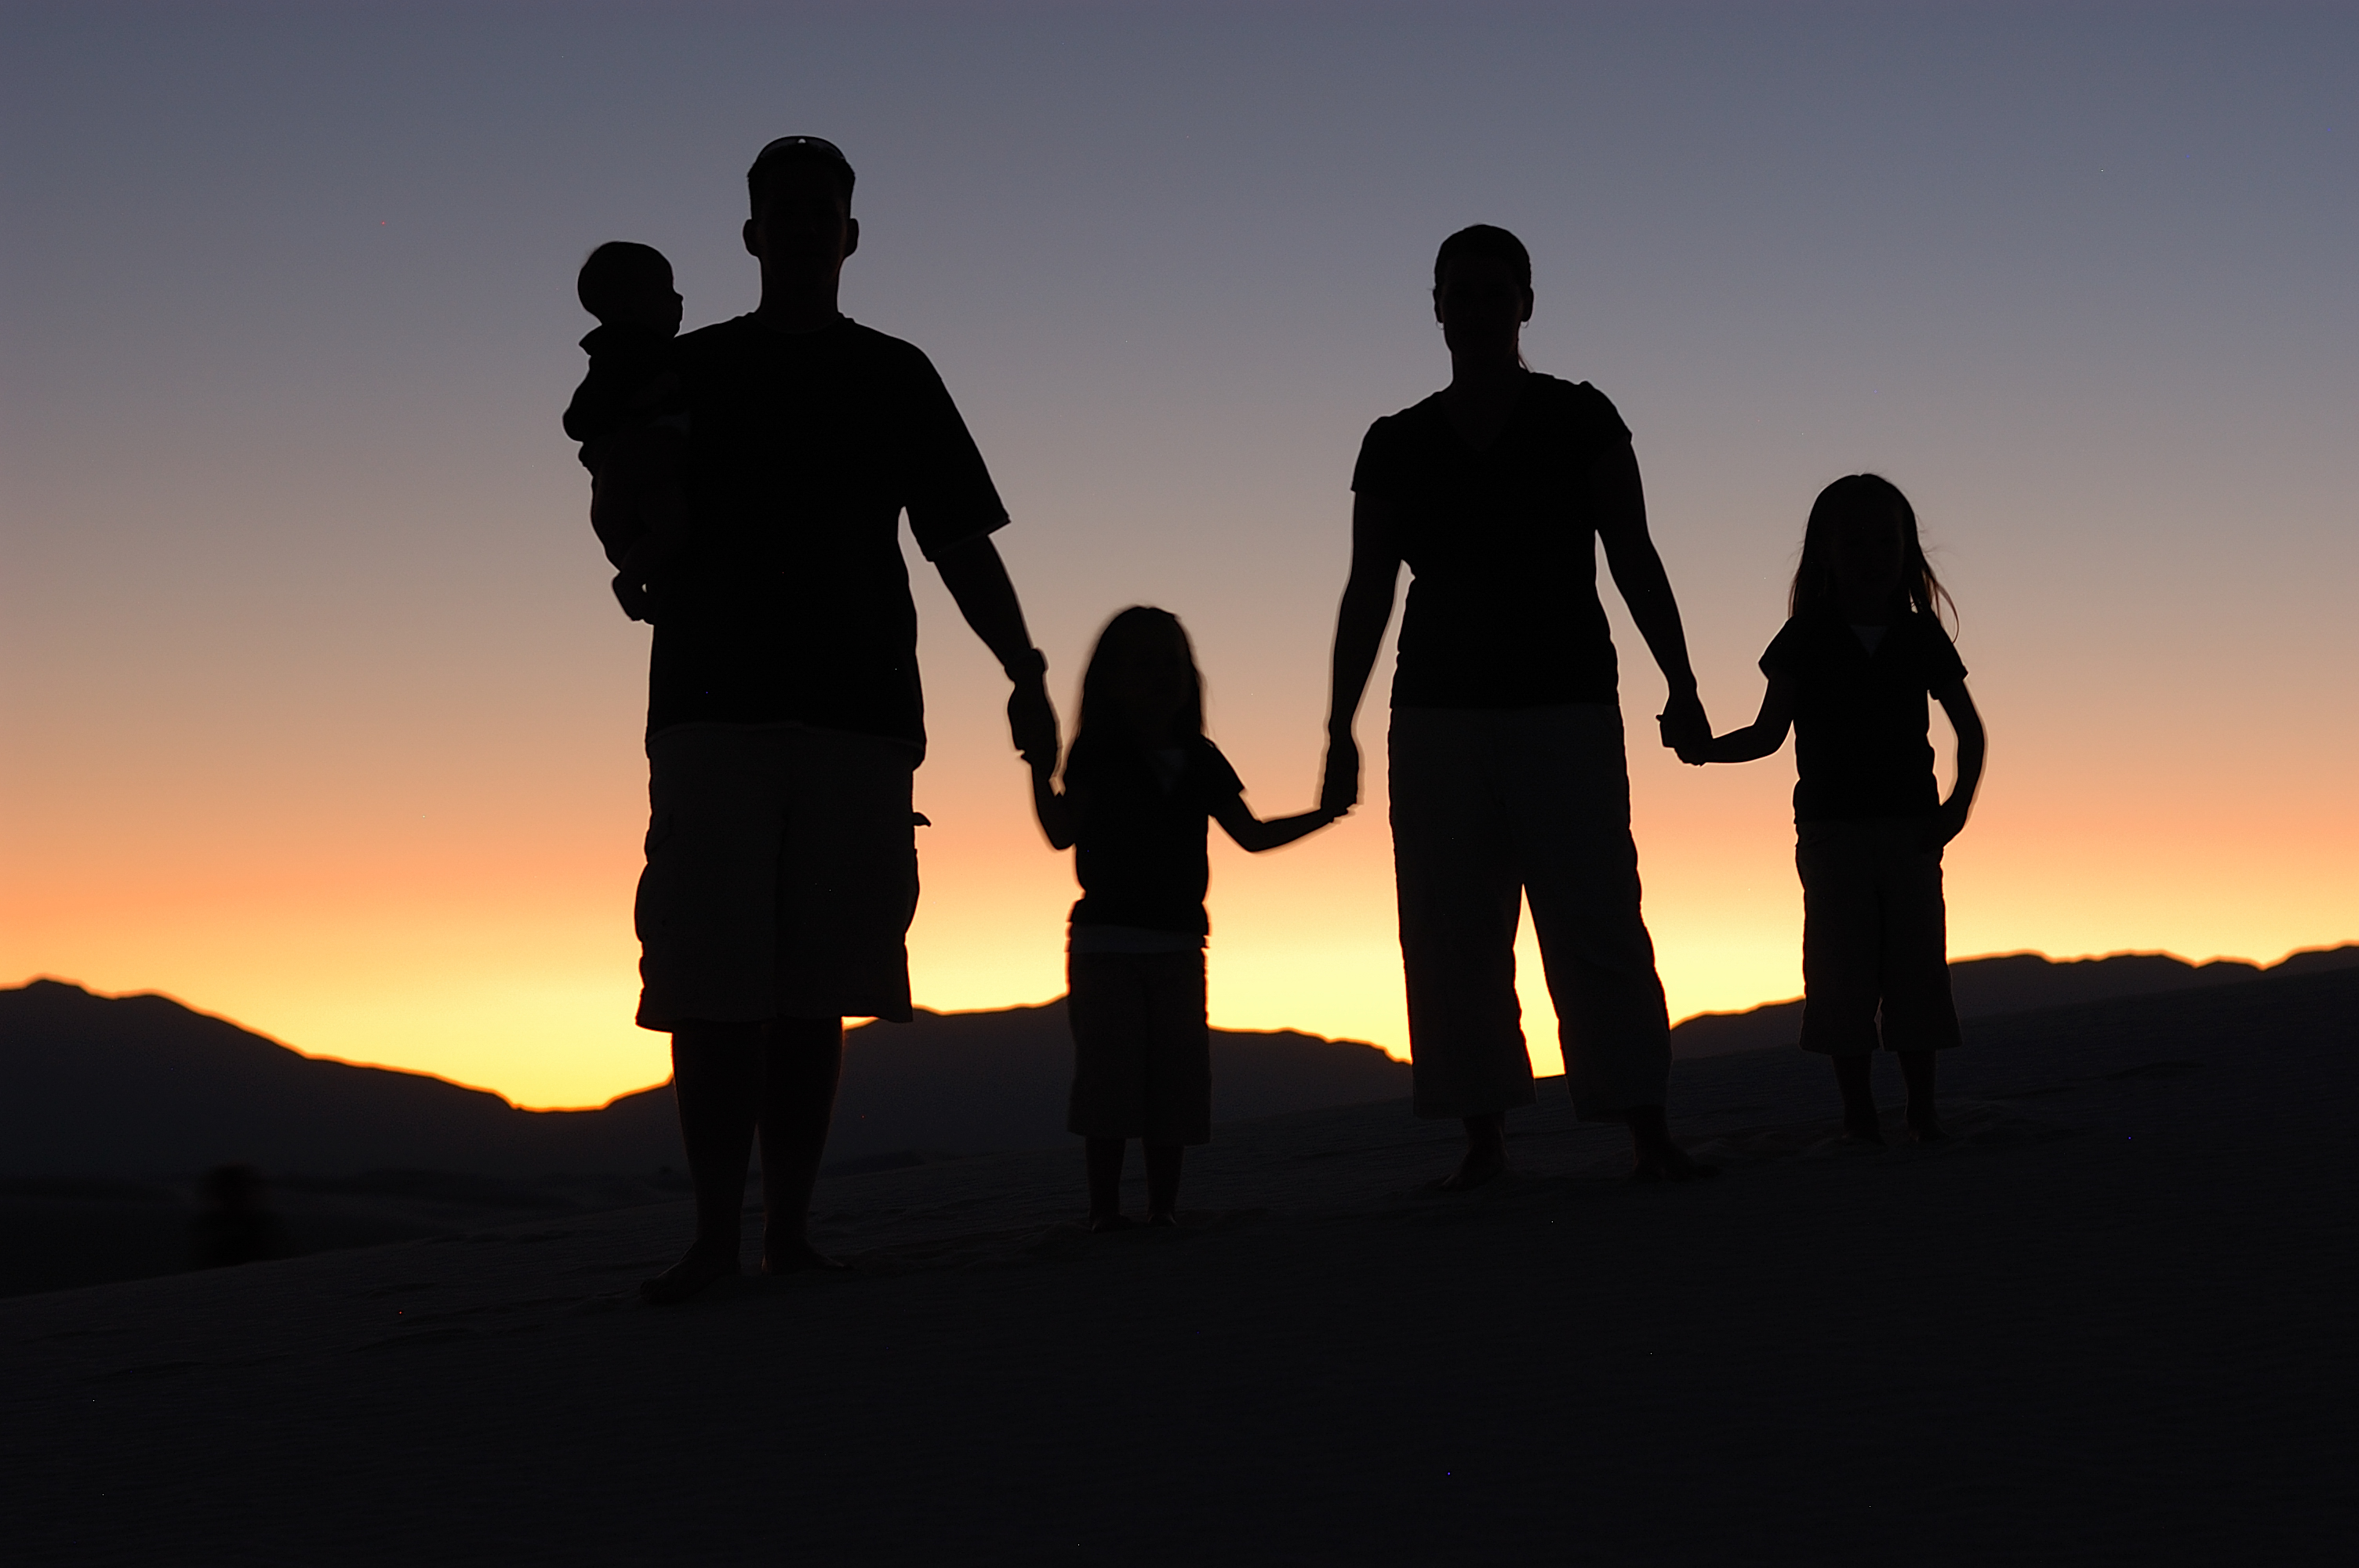 Two parents and three children silhouetted against a twilight sky